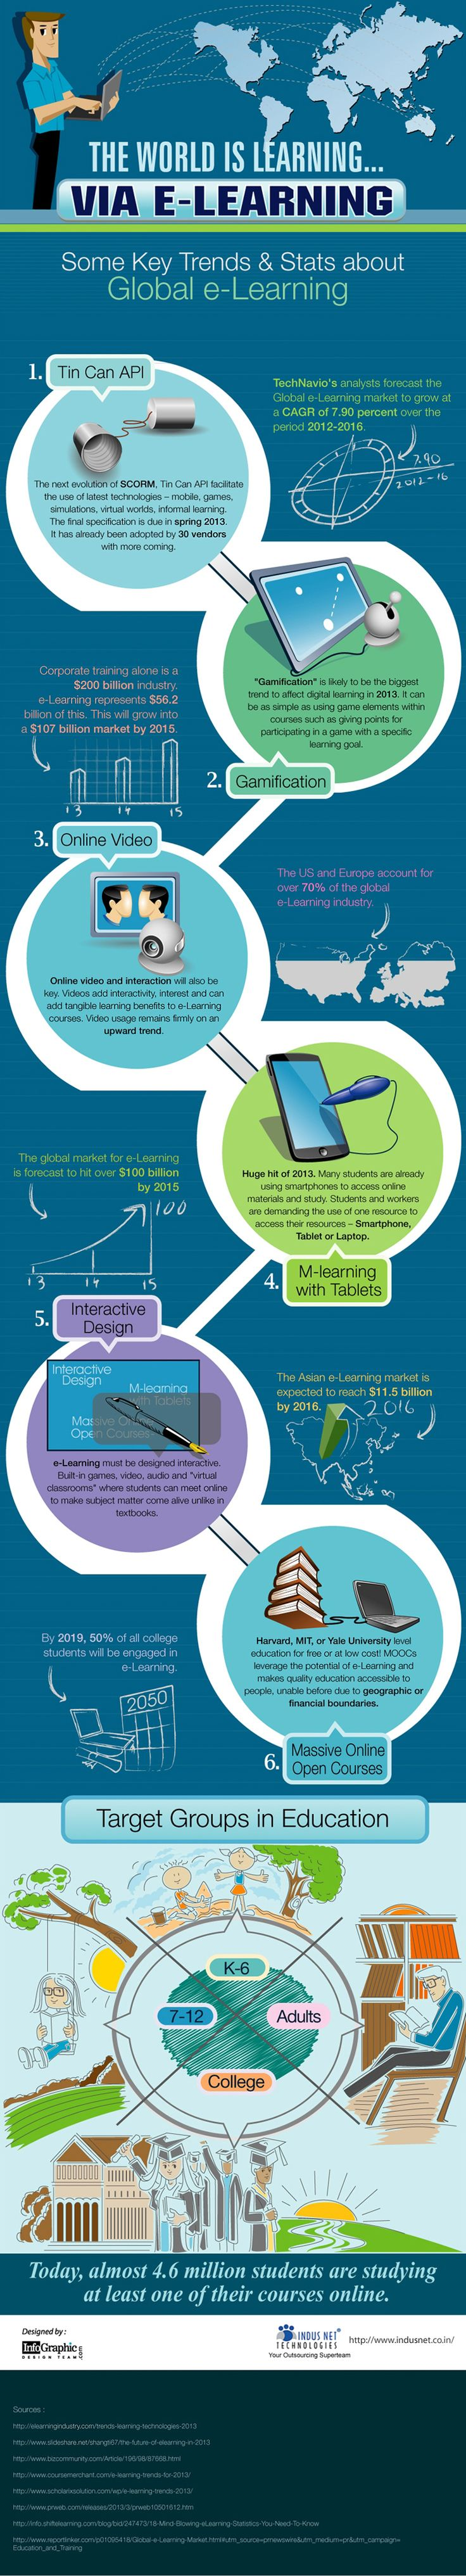 """The World is Learning Via eLearning"" (#INFOGRAPHIC)"